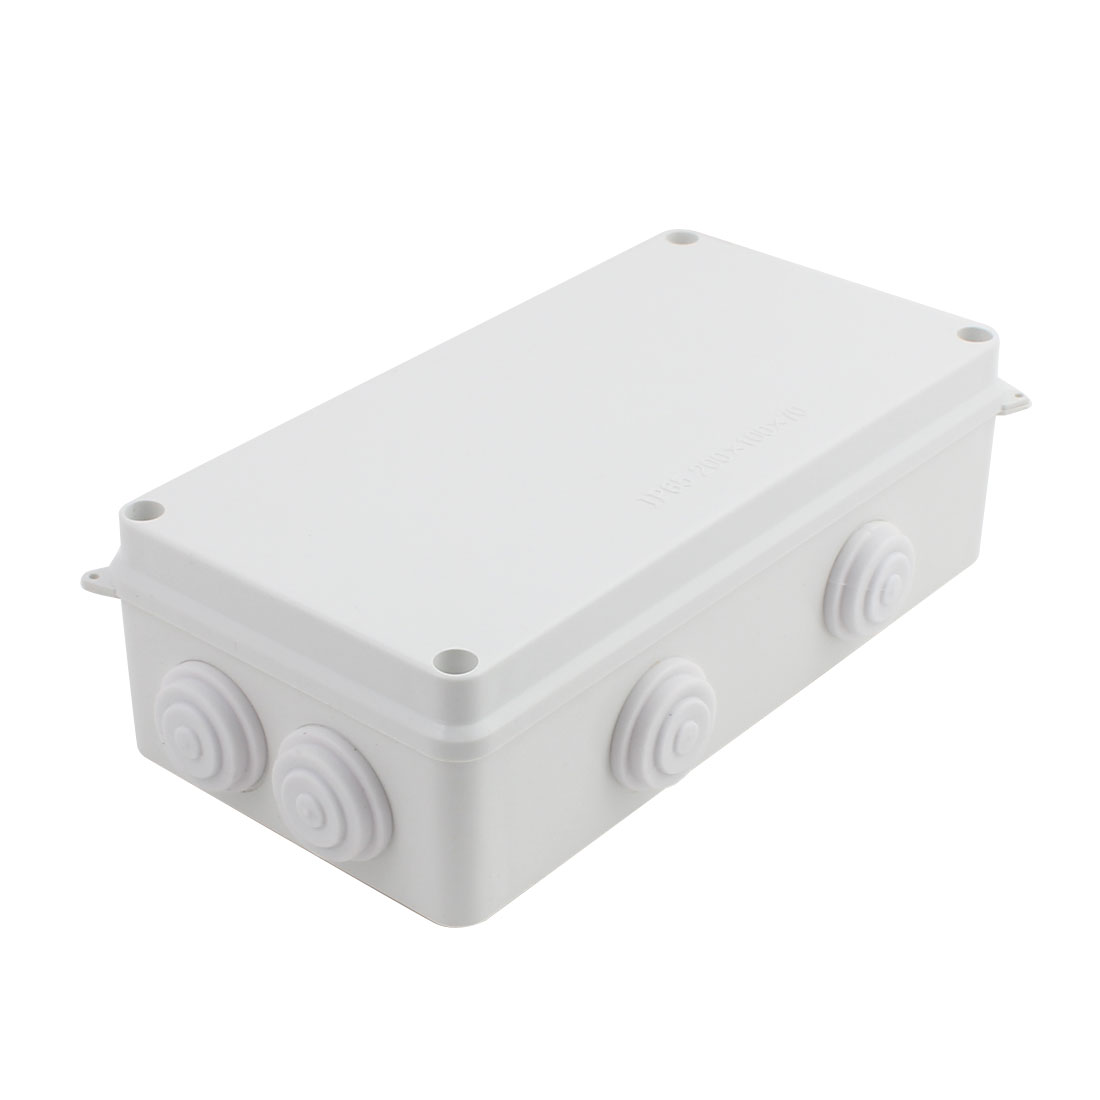 Gray ABS Enclosure Electronic Terminal Junction Box 200x100x70mm